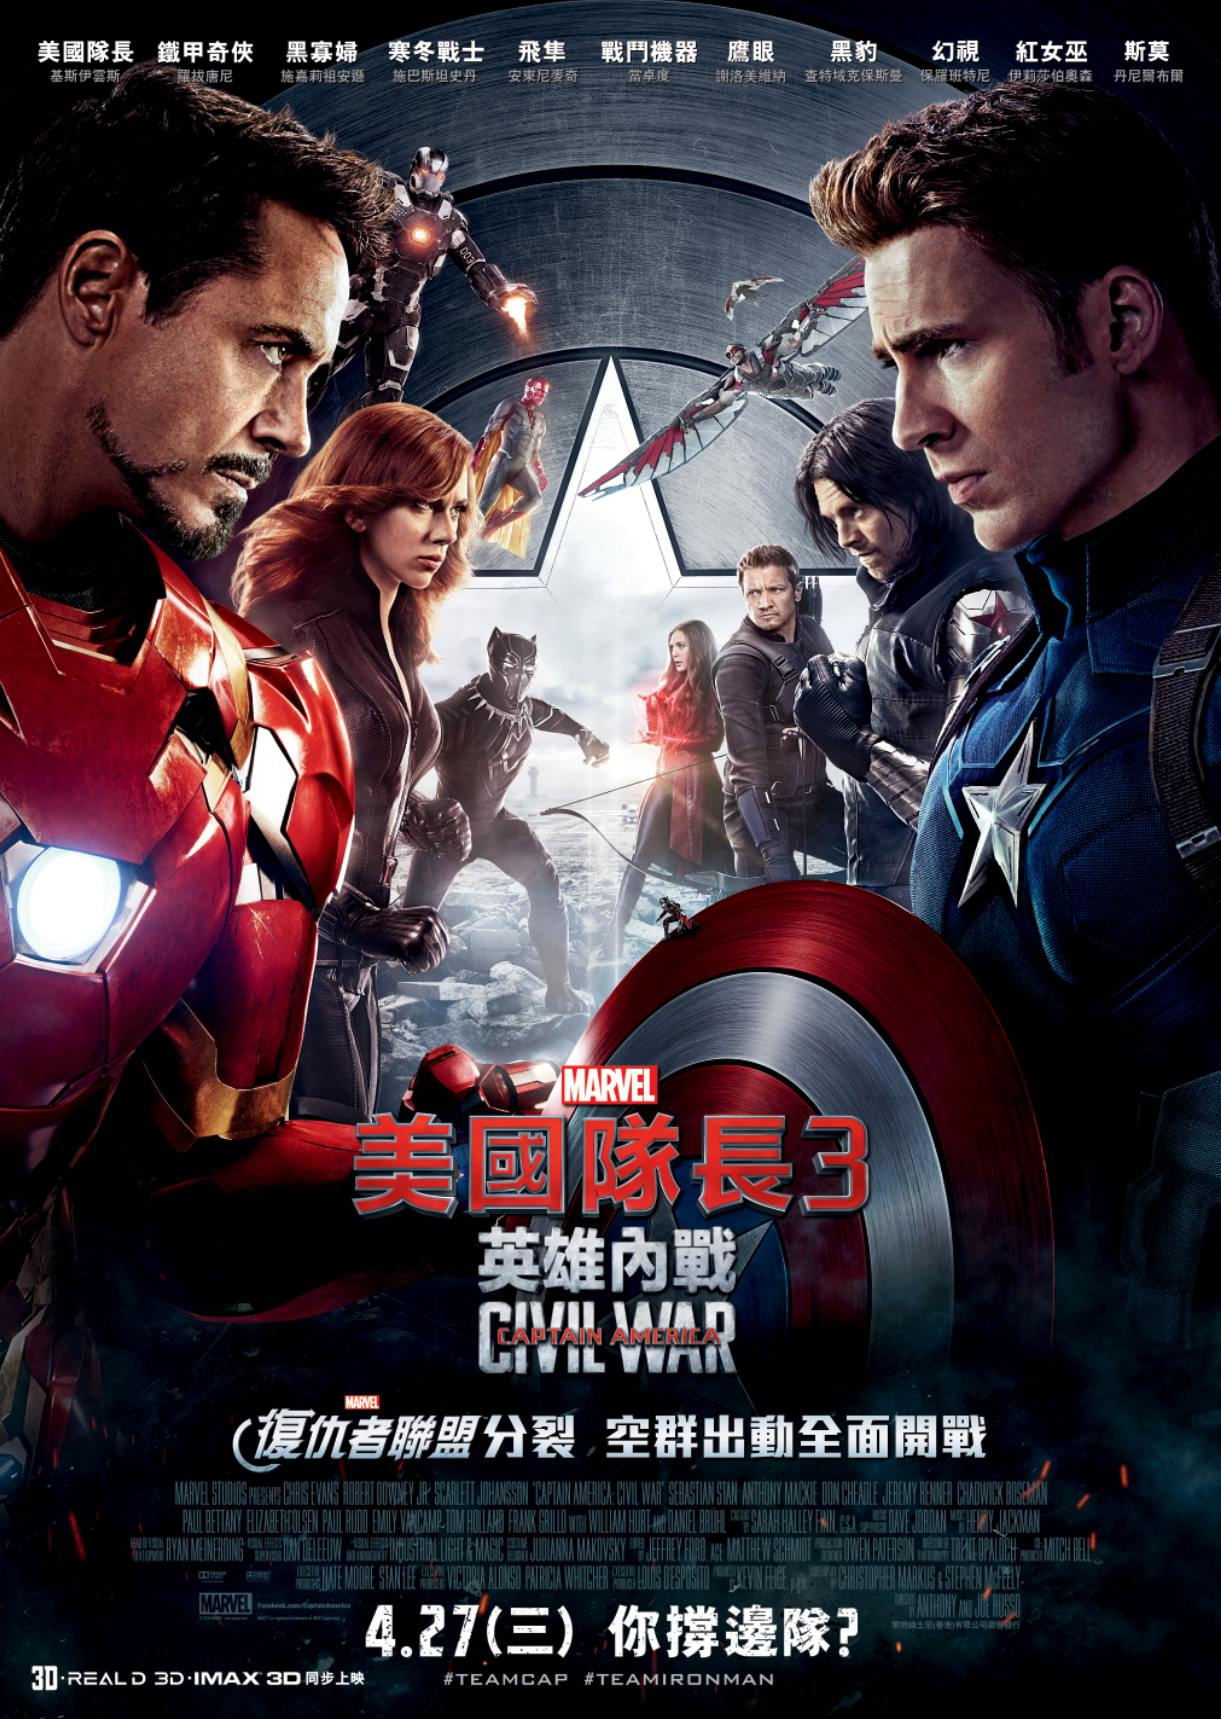 Star Wars Last Jedi Wiki >> Image - Captain America Civil War Chinese Poster.jpg | Disney Wiki | FANDOM powered by Wikia